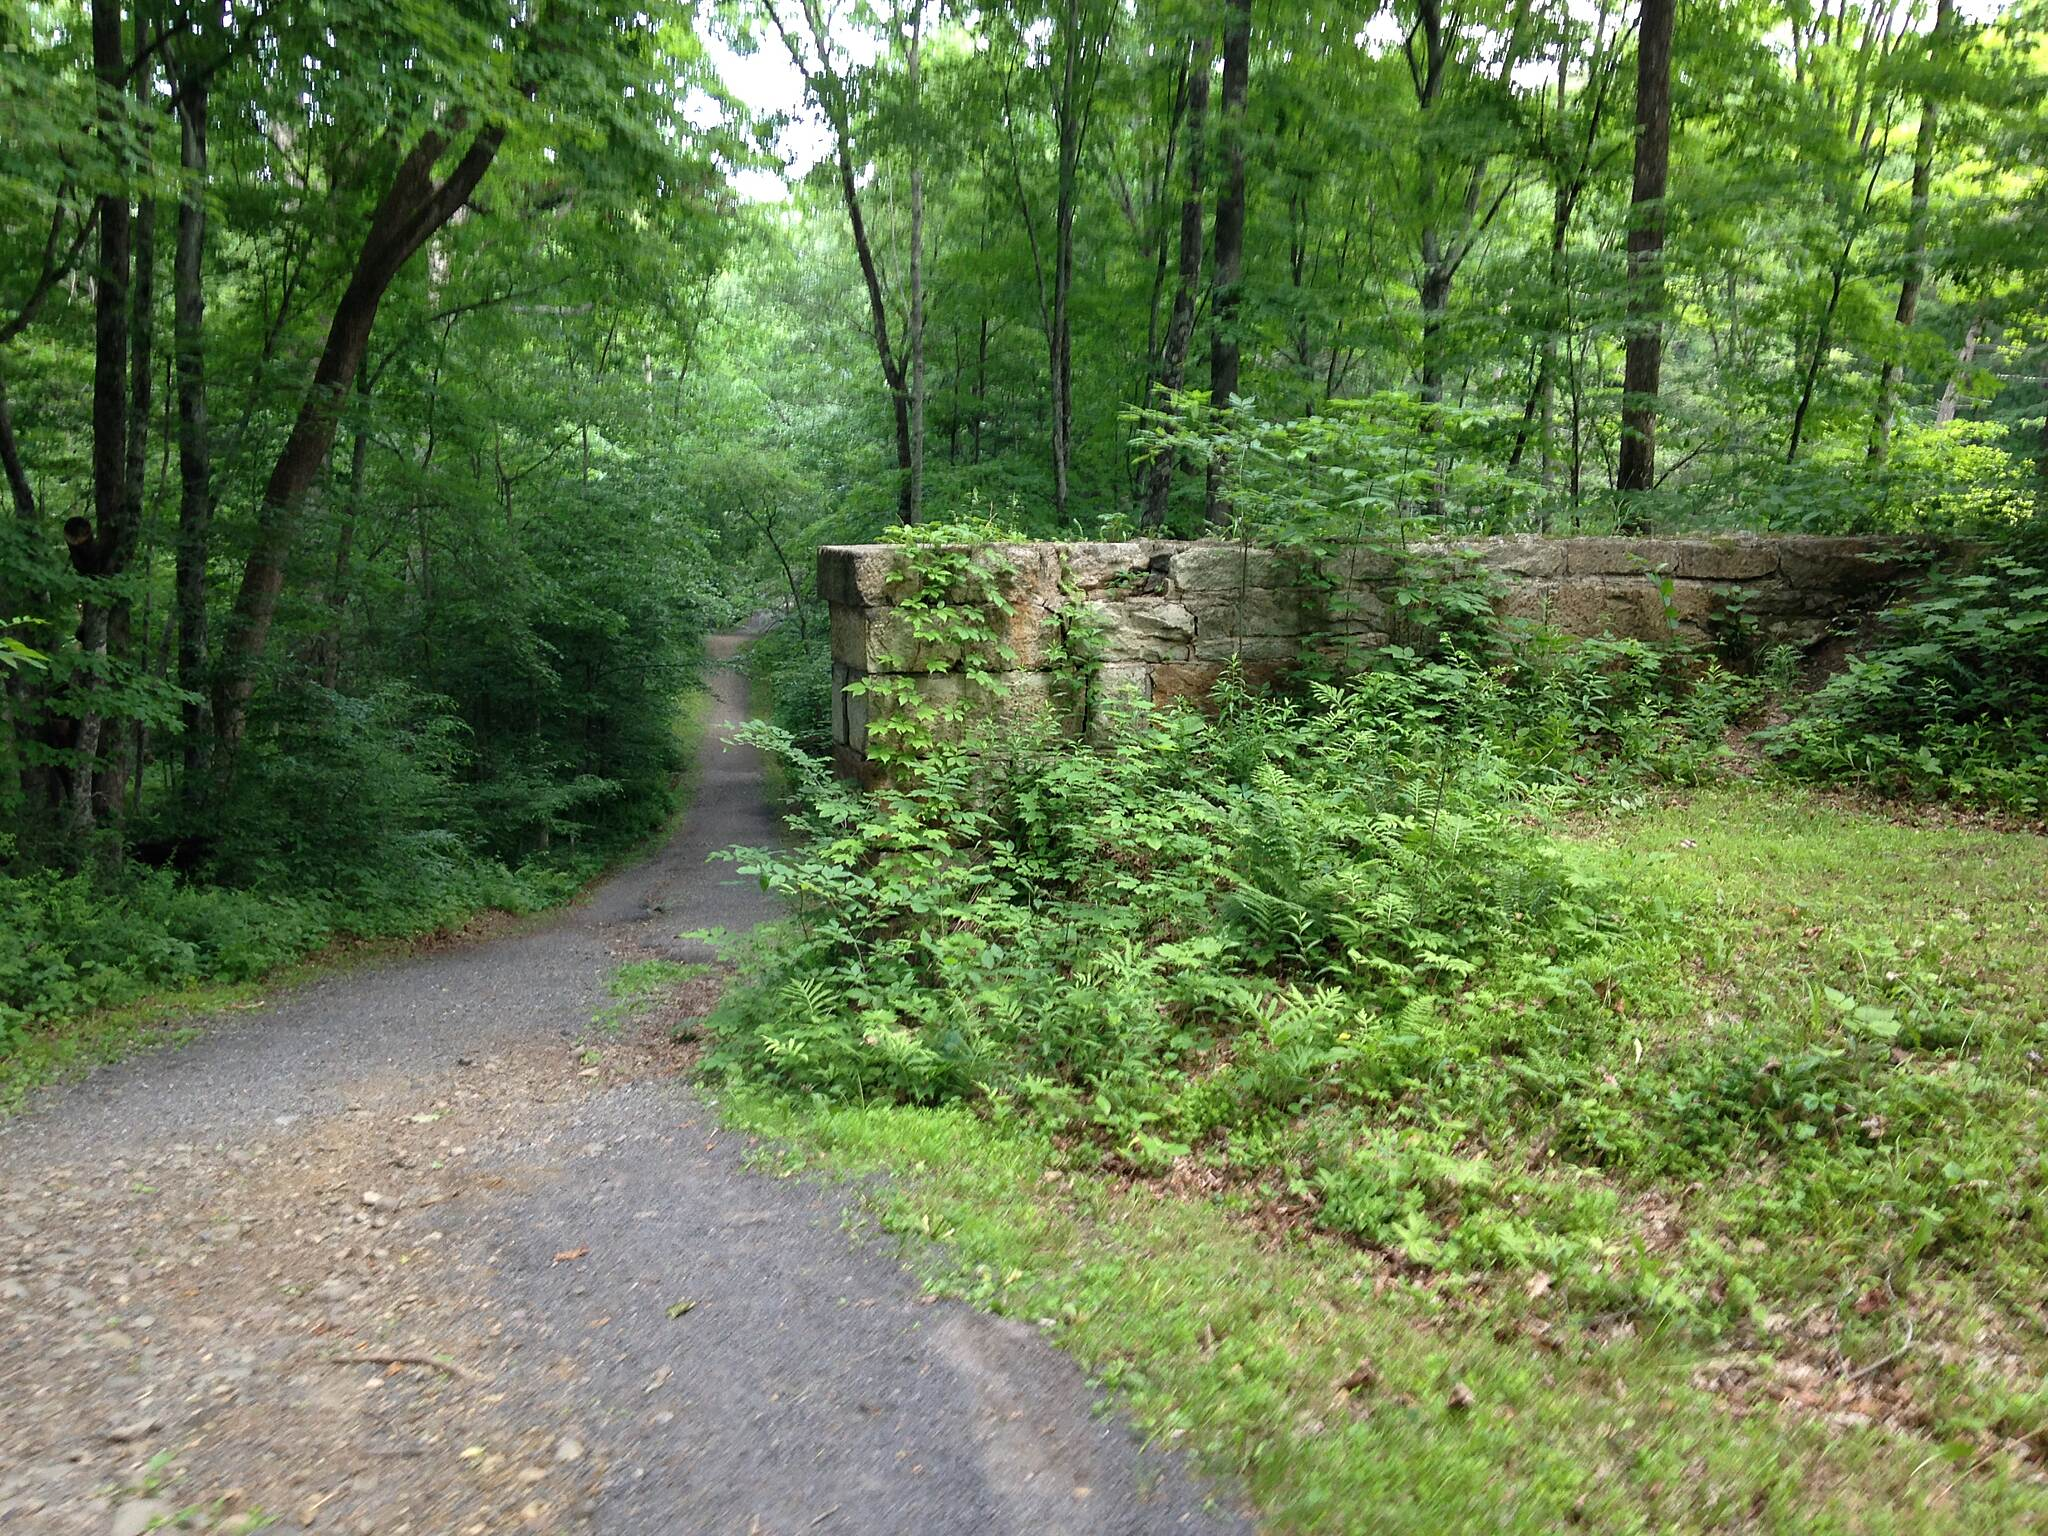 D & H Canal Heritage Corridor (O&W Rail-Trail) Stone Wall Trail-Side